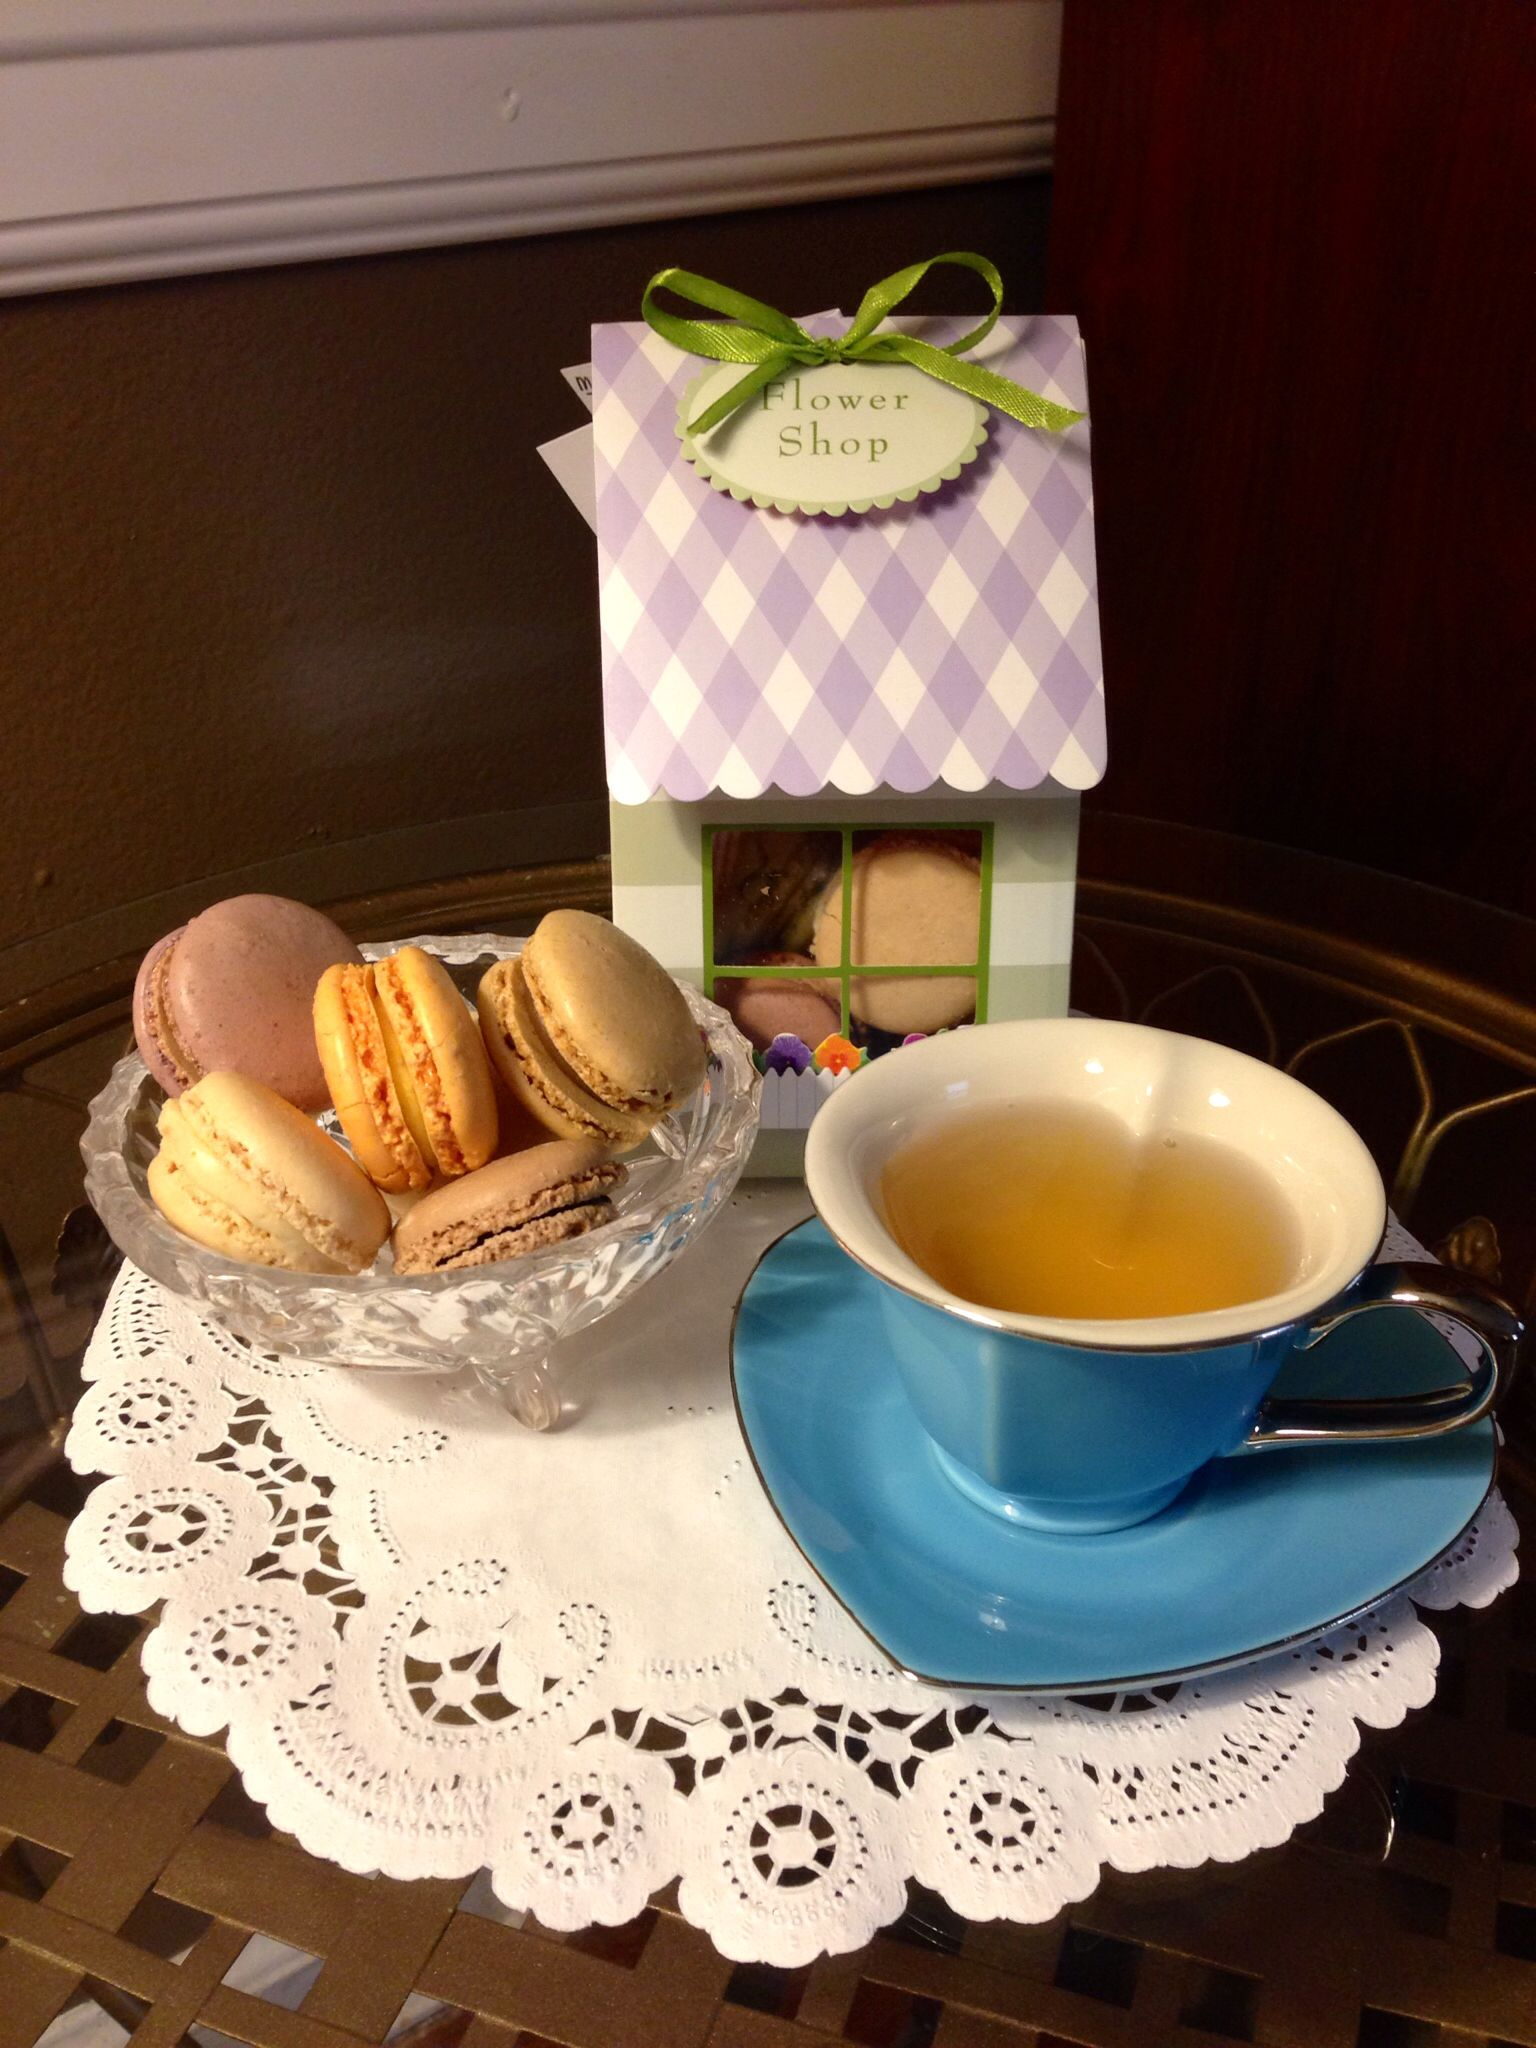 Afternoon tea with Macaroons